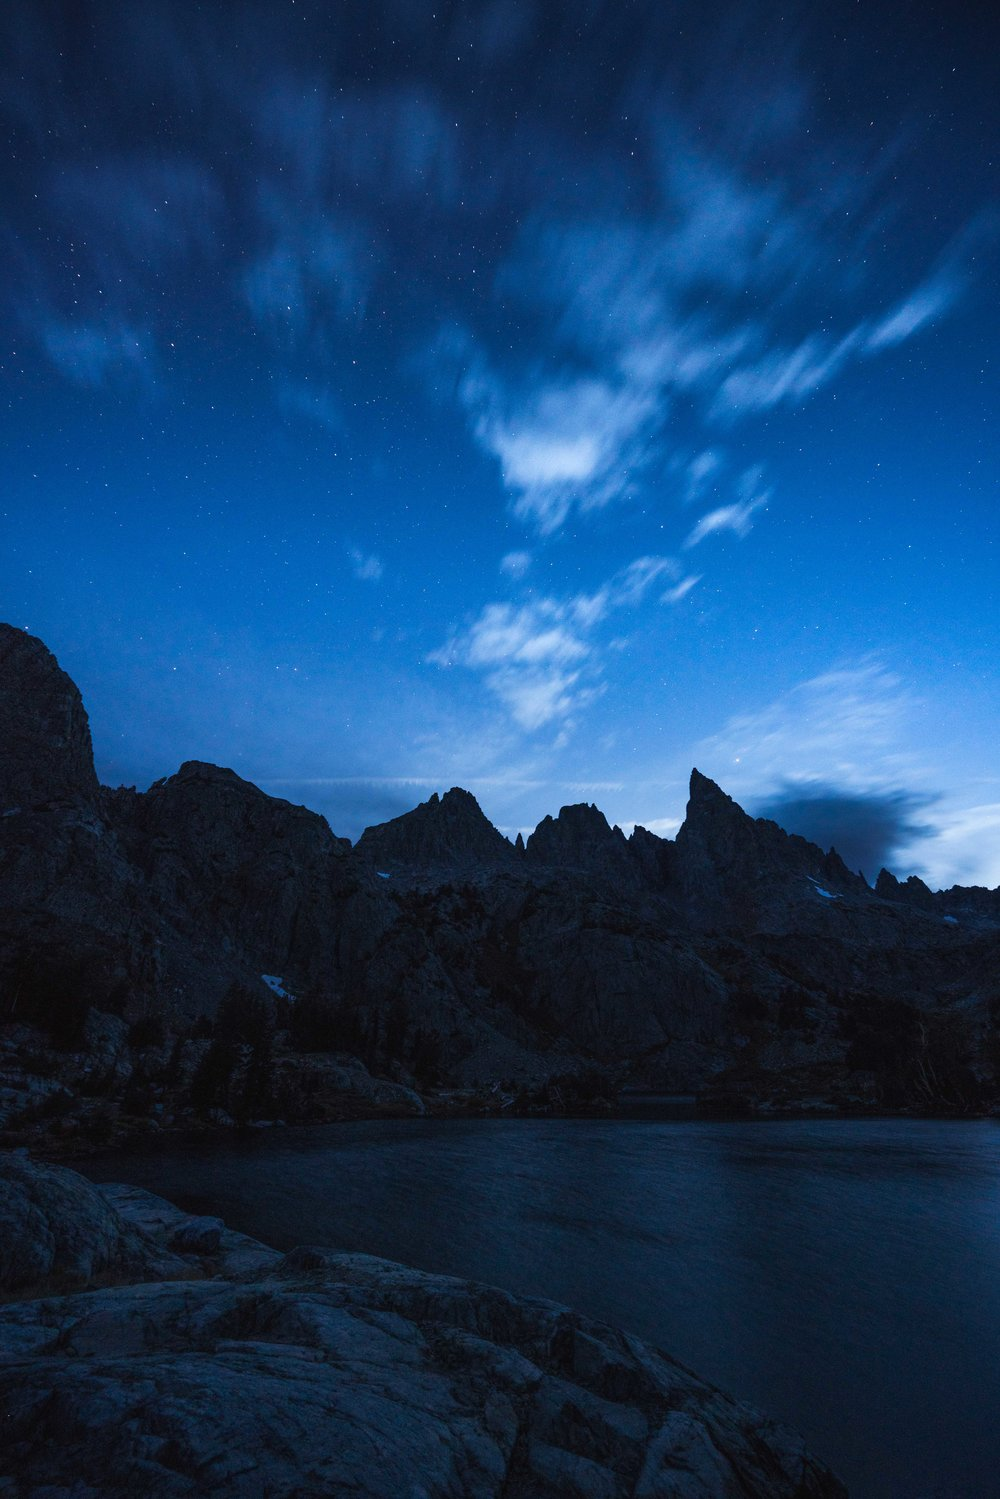 minaret lake, clyde minaret, eastern sierras, mammoth lakes, best, hikes, camping, ritter range, rock climbing, things to do, wilderness, permit, backcountry, inyo, national forest, minaret creek, devils postpile, ranger station, california mountain, photography sony, a7riii, a7r3, mirrorless, landscape, outdoor, adventure, sunrise, fall, blue hour, astro, stars, night, long exposure, blue hour